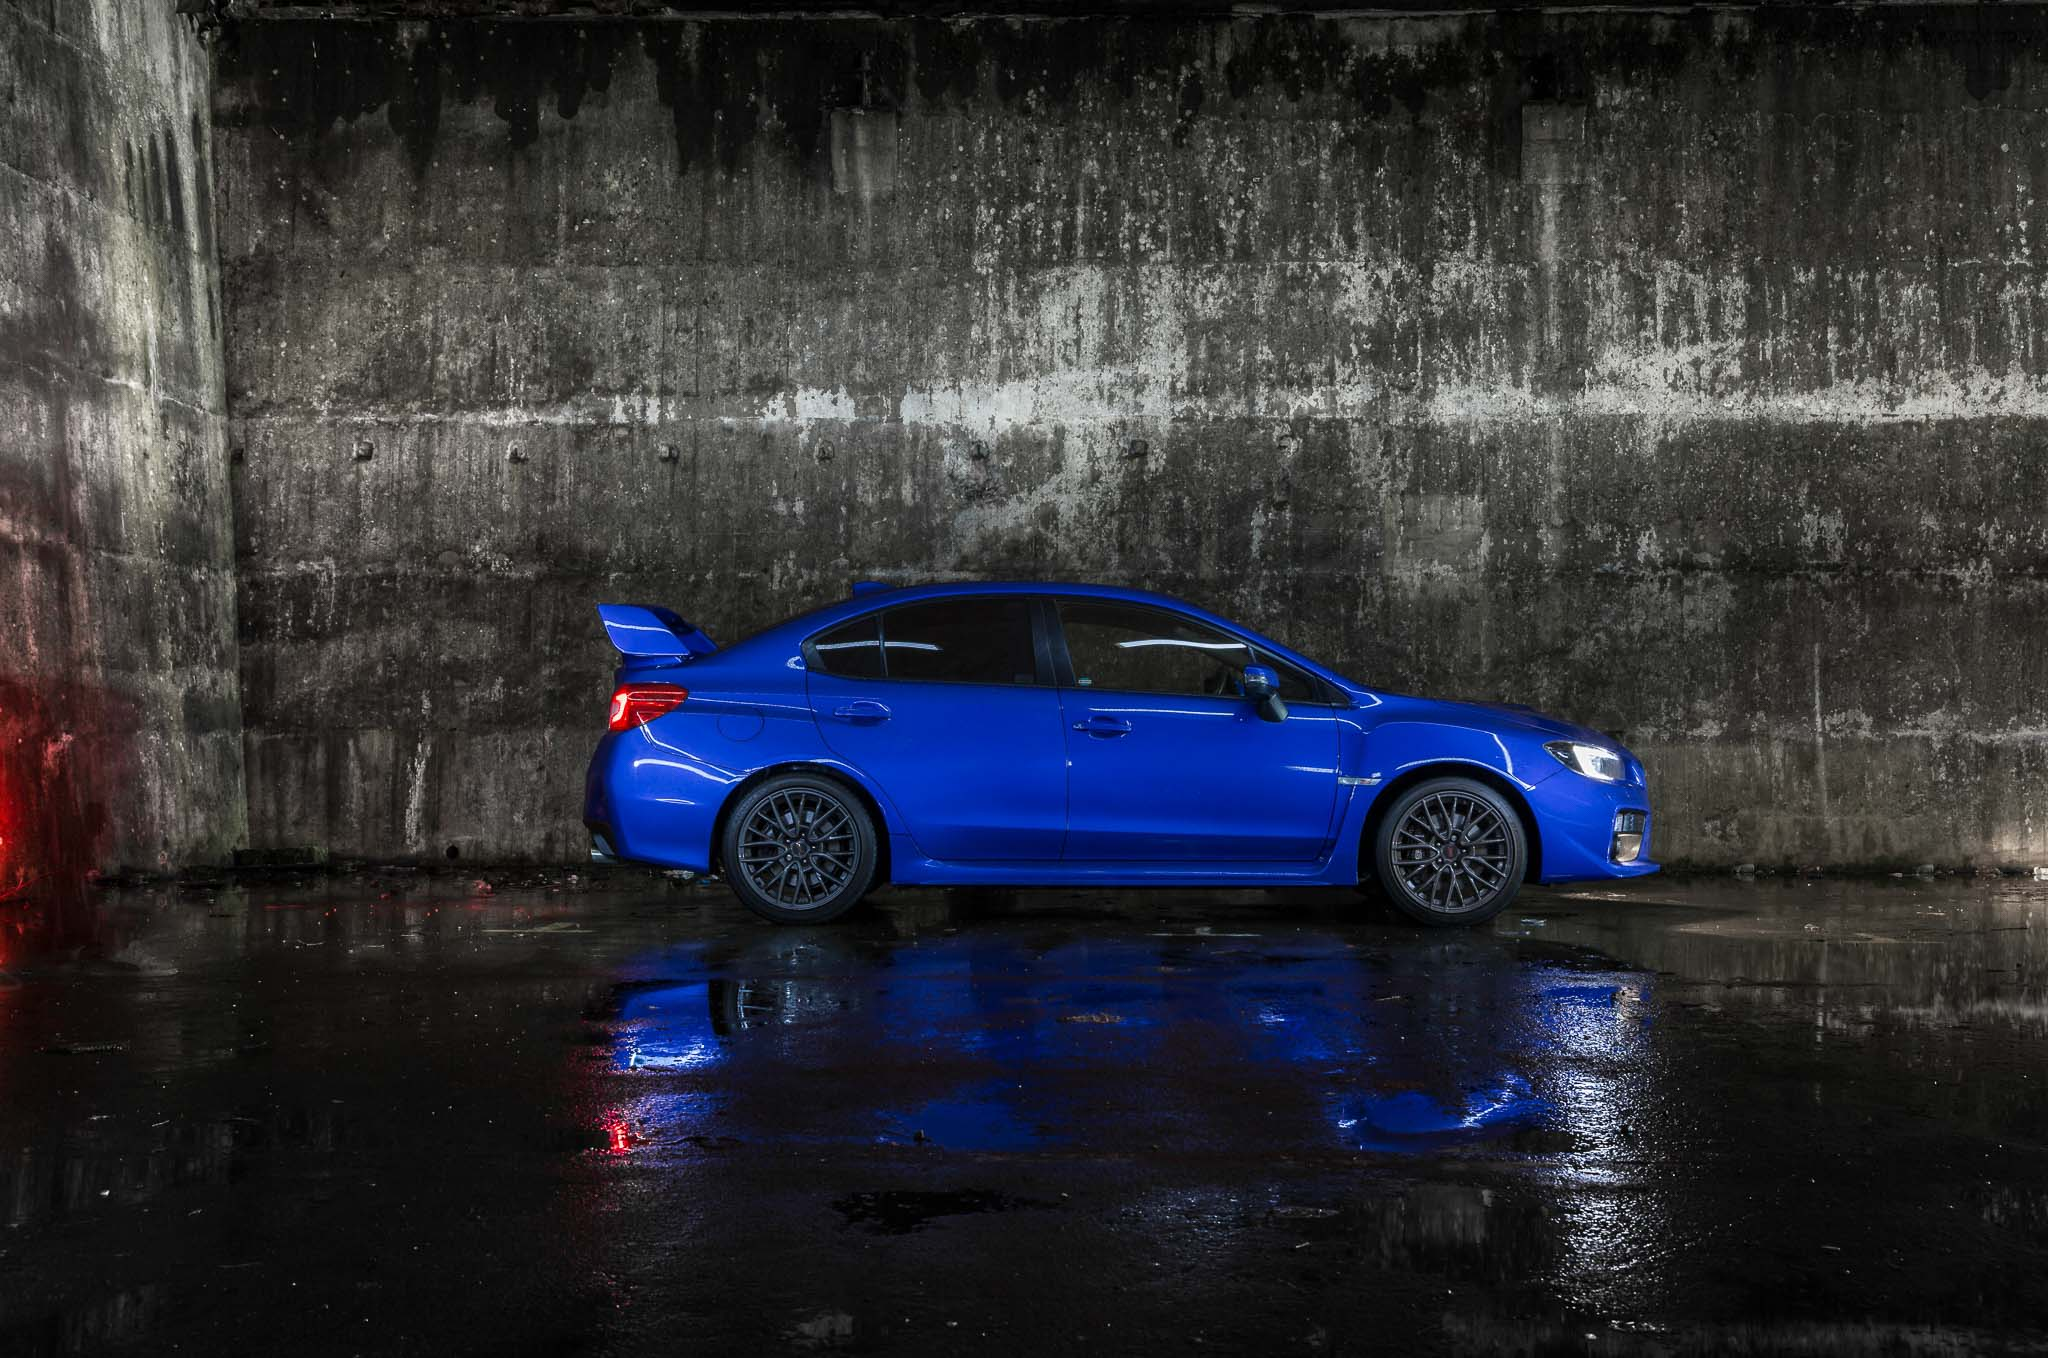 The 2017 Subaru WRX STi: A Review On This Year's Hot Subaru!